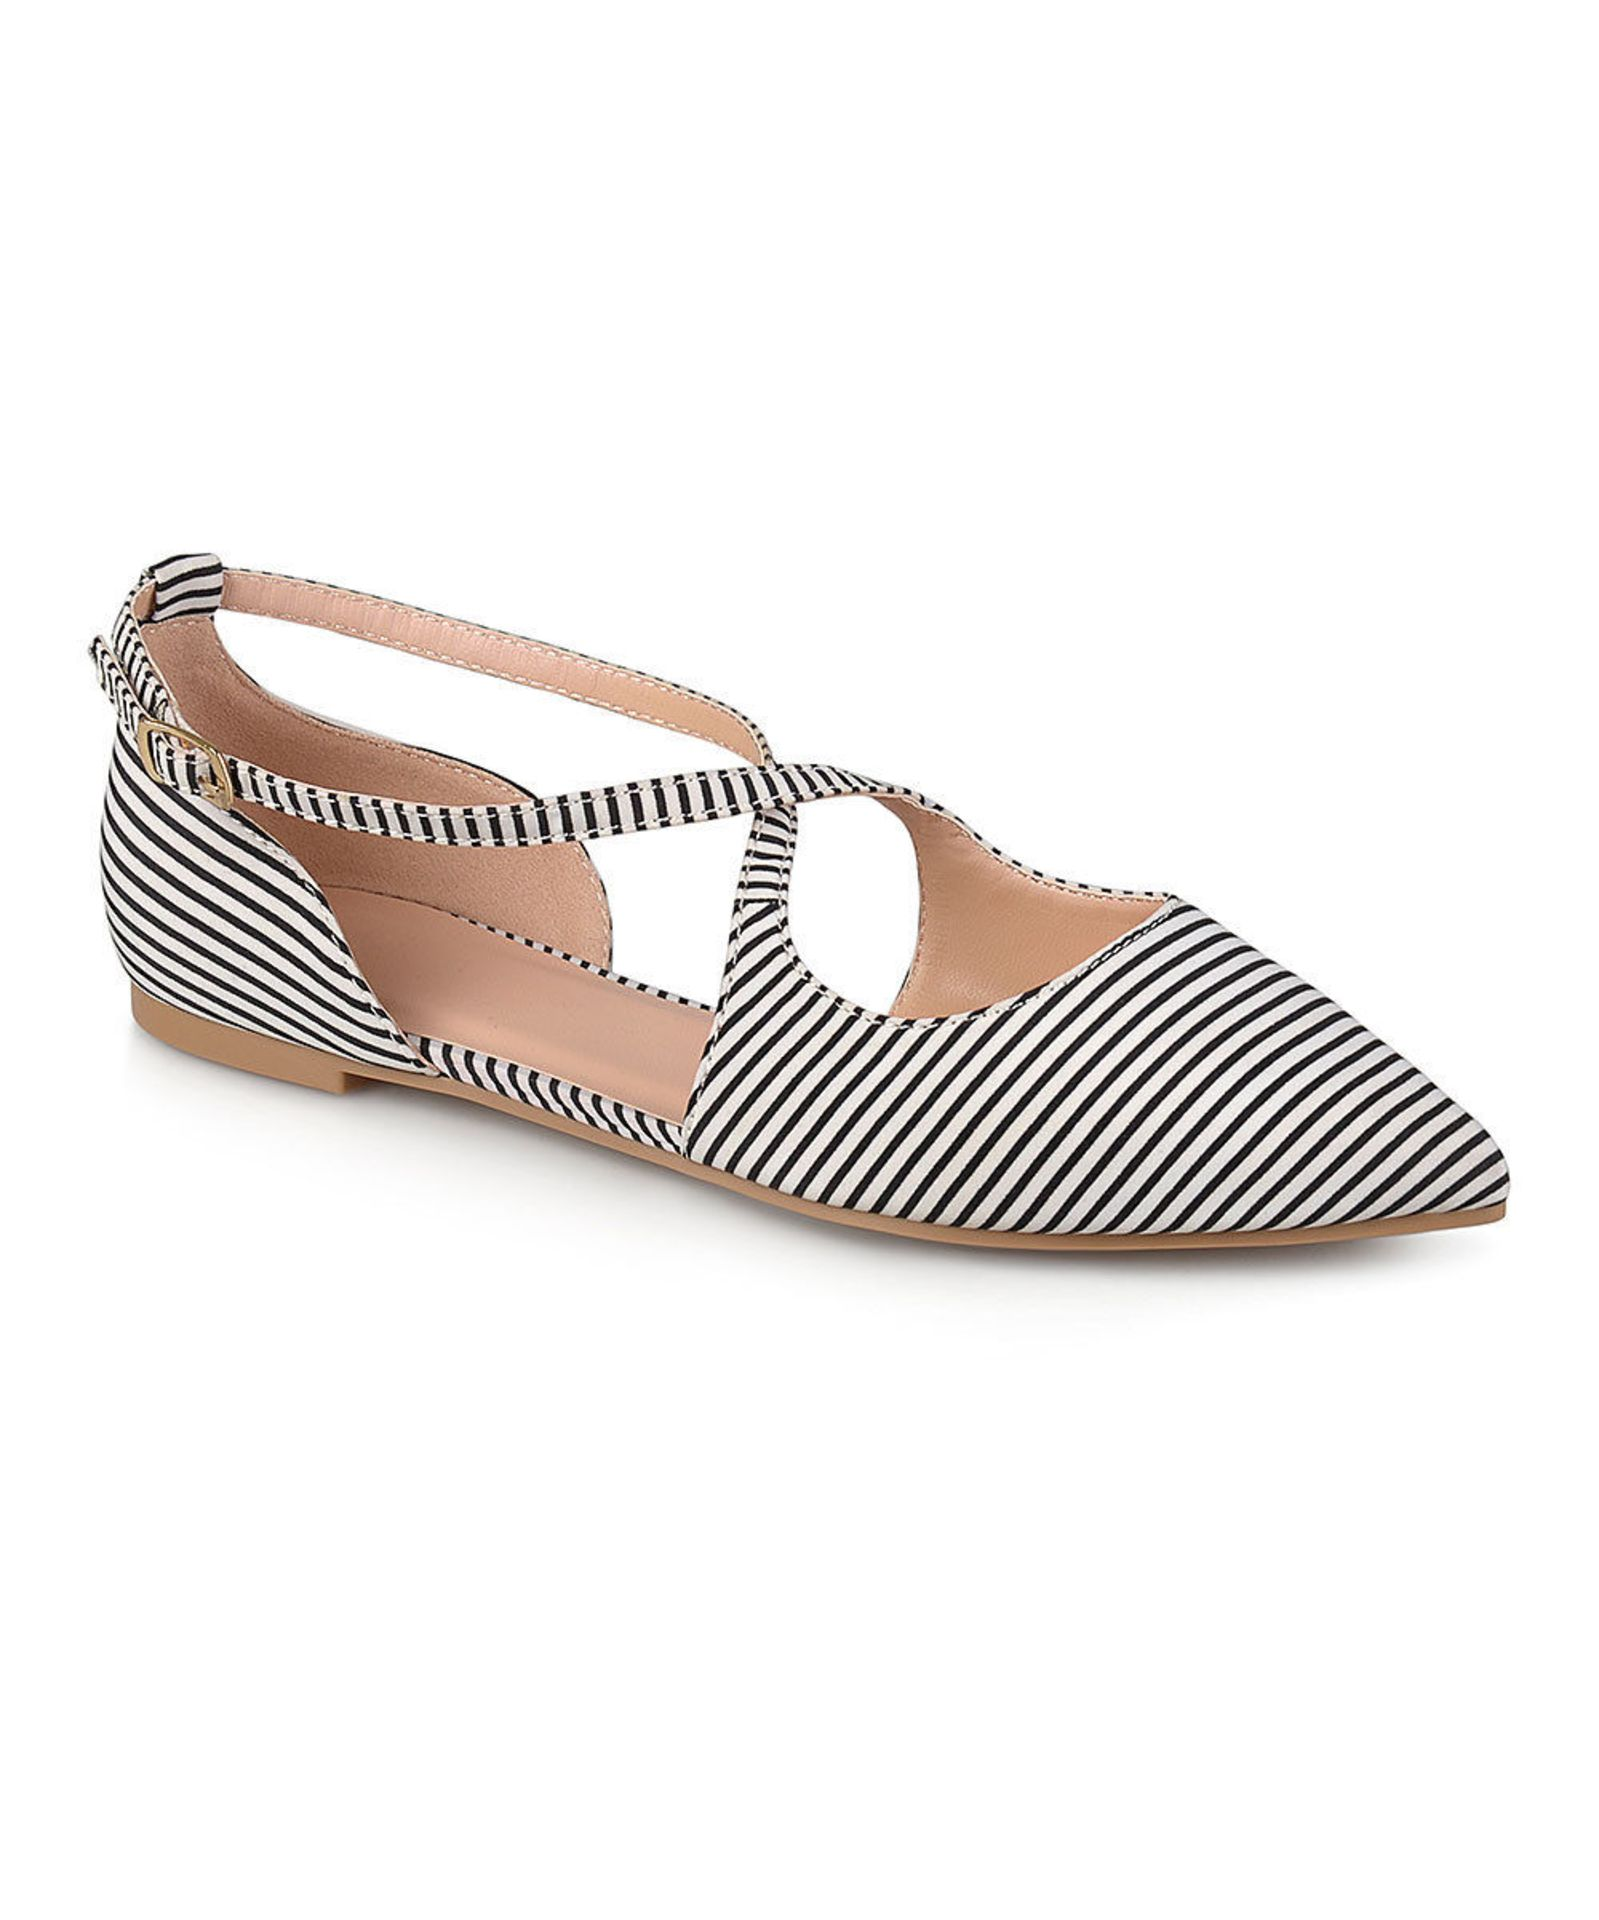 Lot 54 - Bella Cora Black Stripe Malina Flat (Uk Size:5/Us Size:7.5) (New With Box) [Ref: 52534818-G-002]